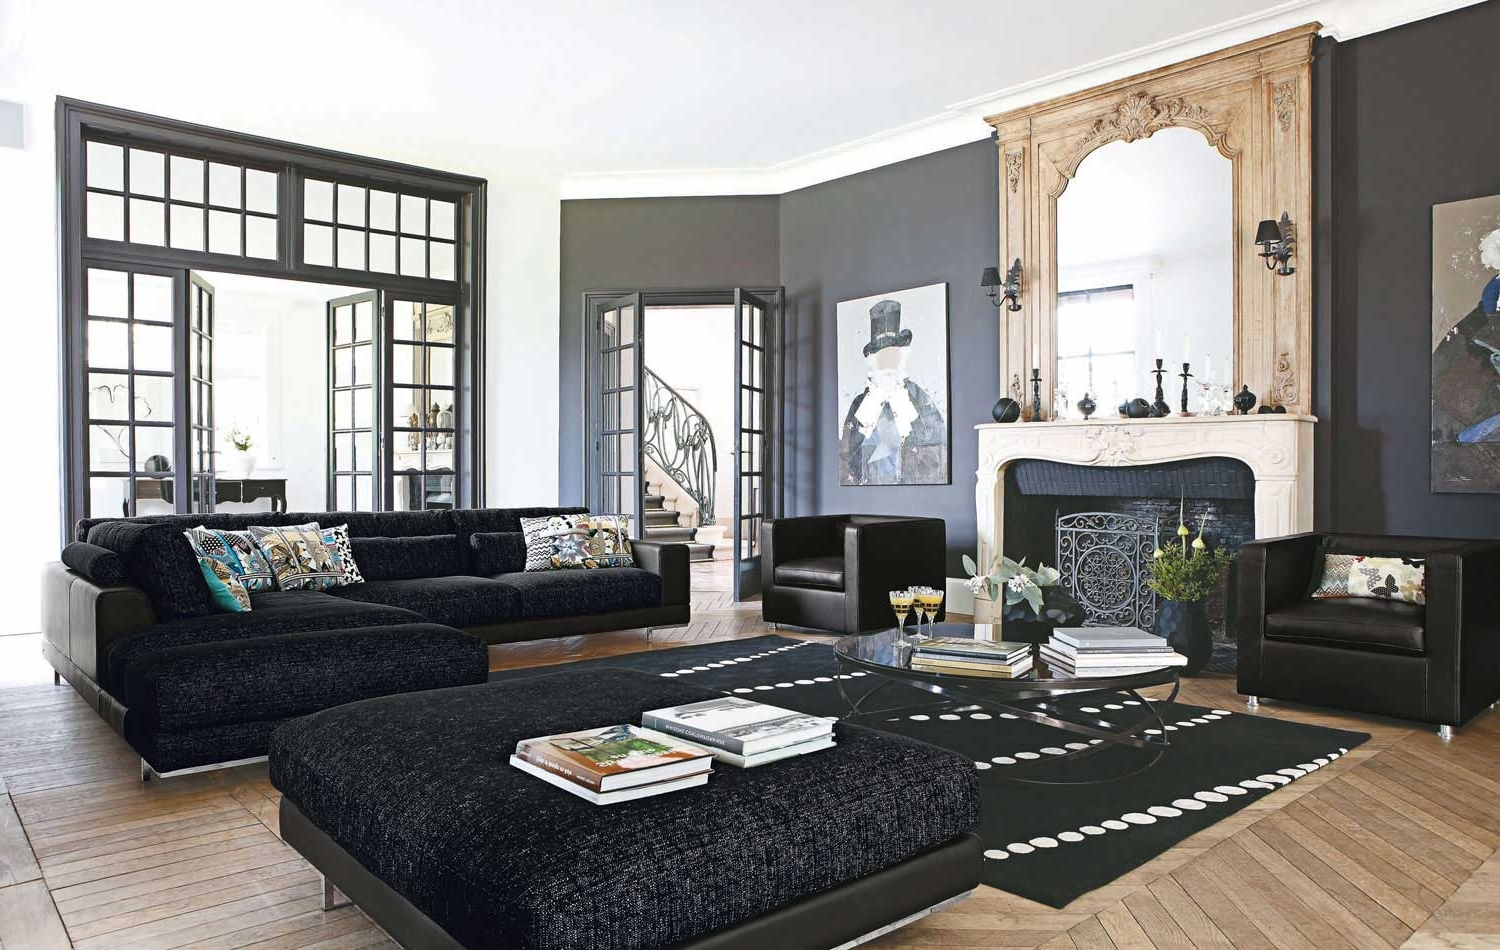 Popular Living Room Decorating Ideas With Black Leather Living Room Decorating Black Leather Couch